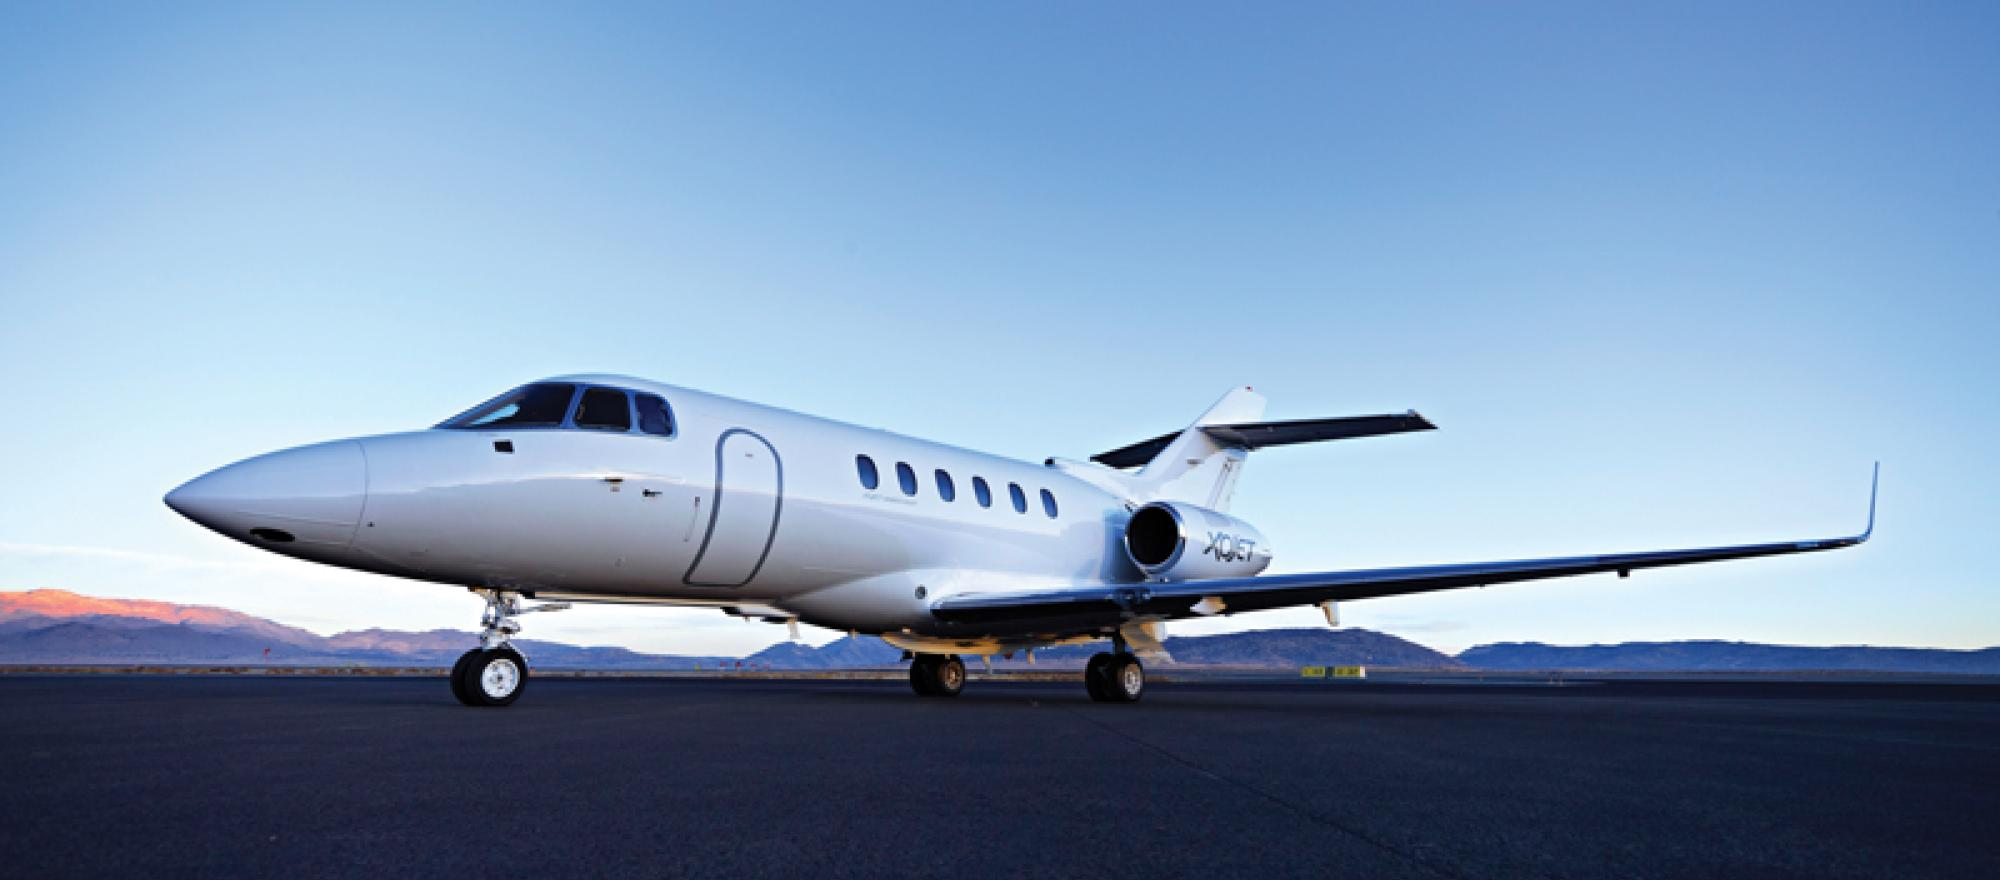 The Xojet difference